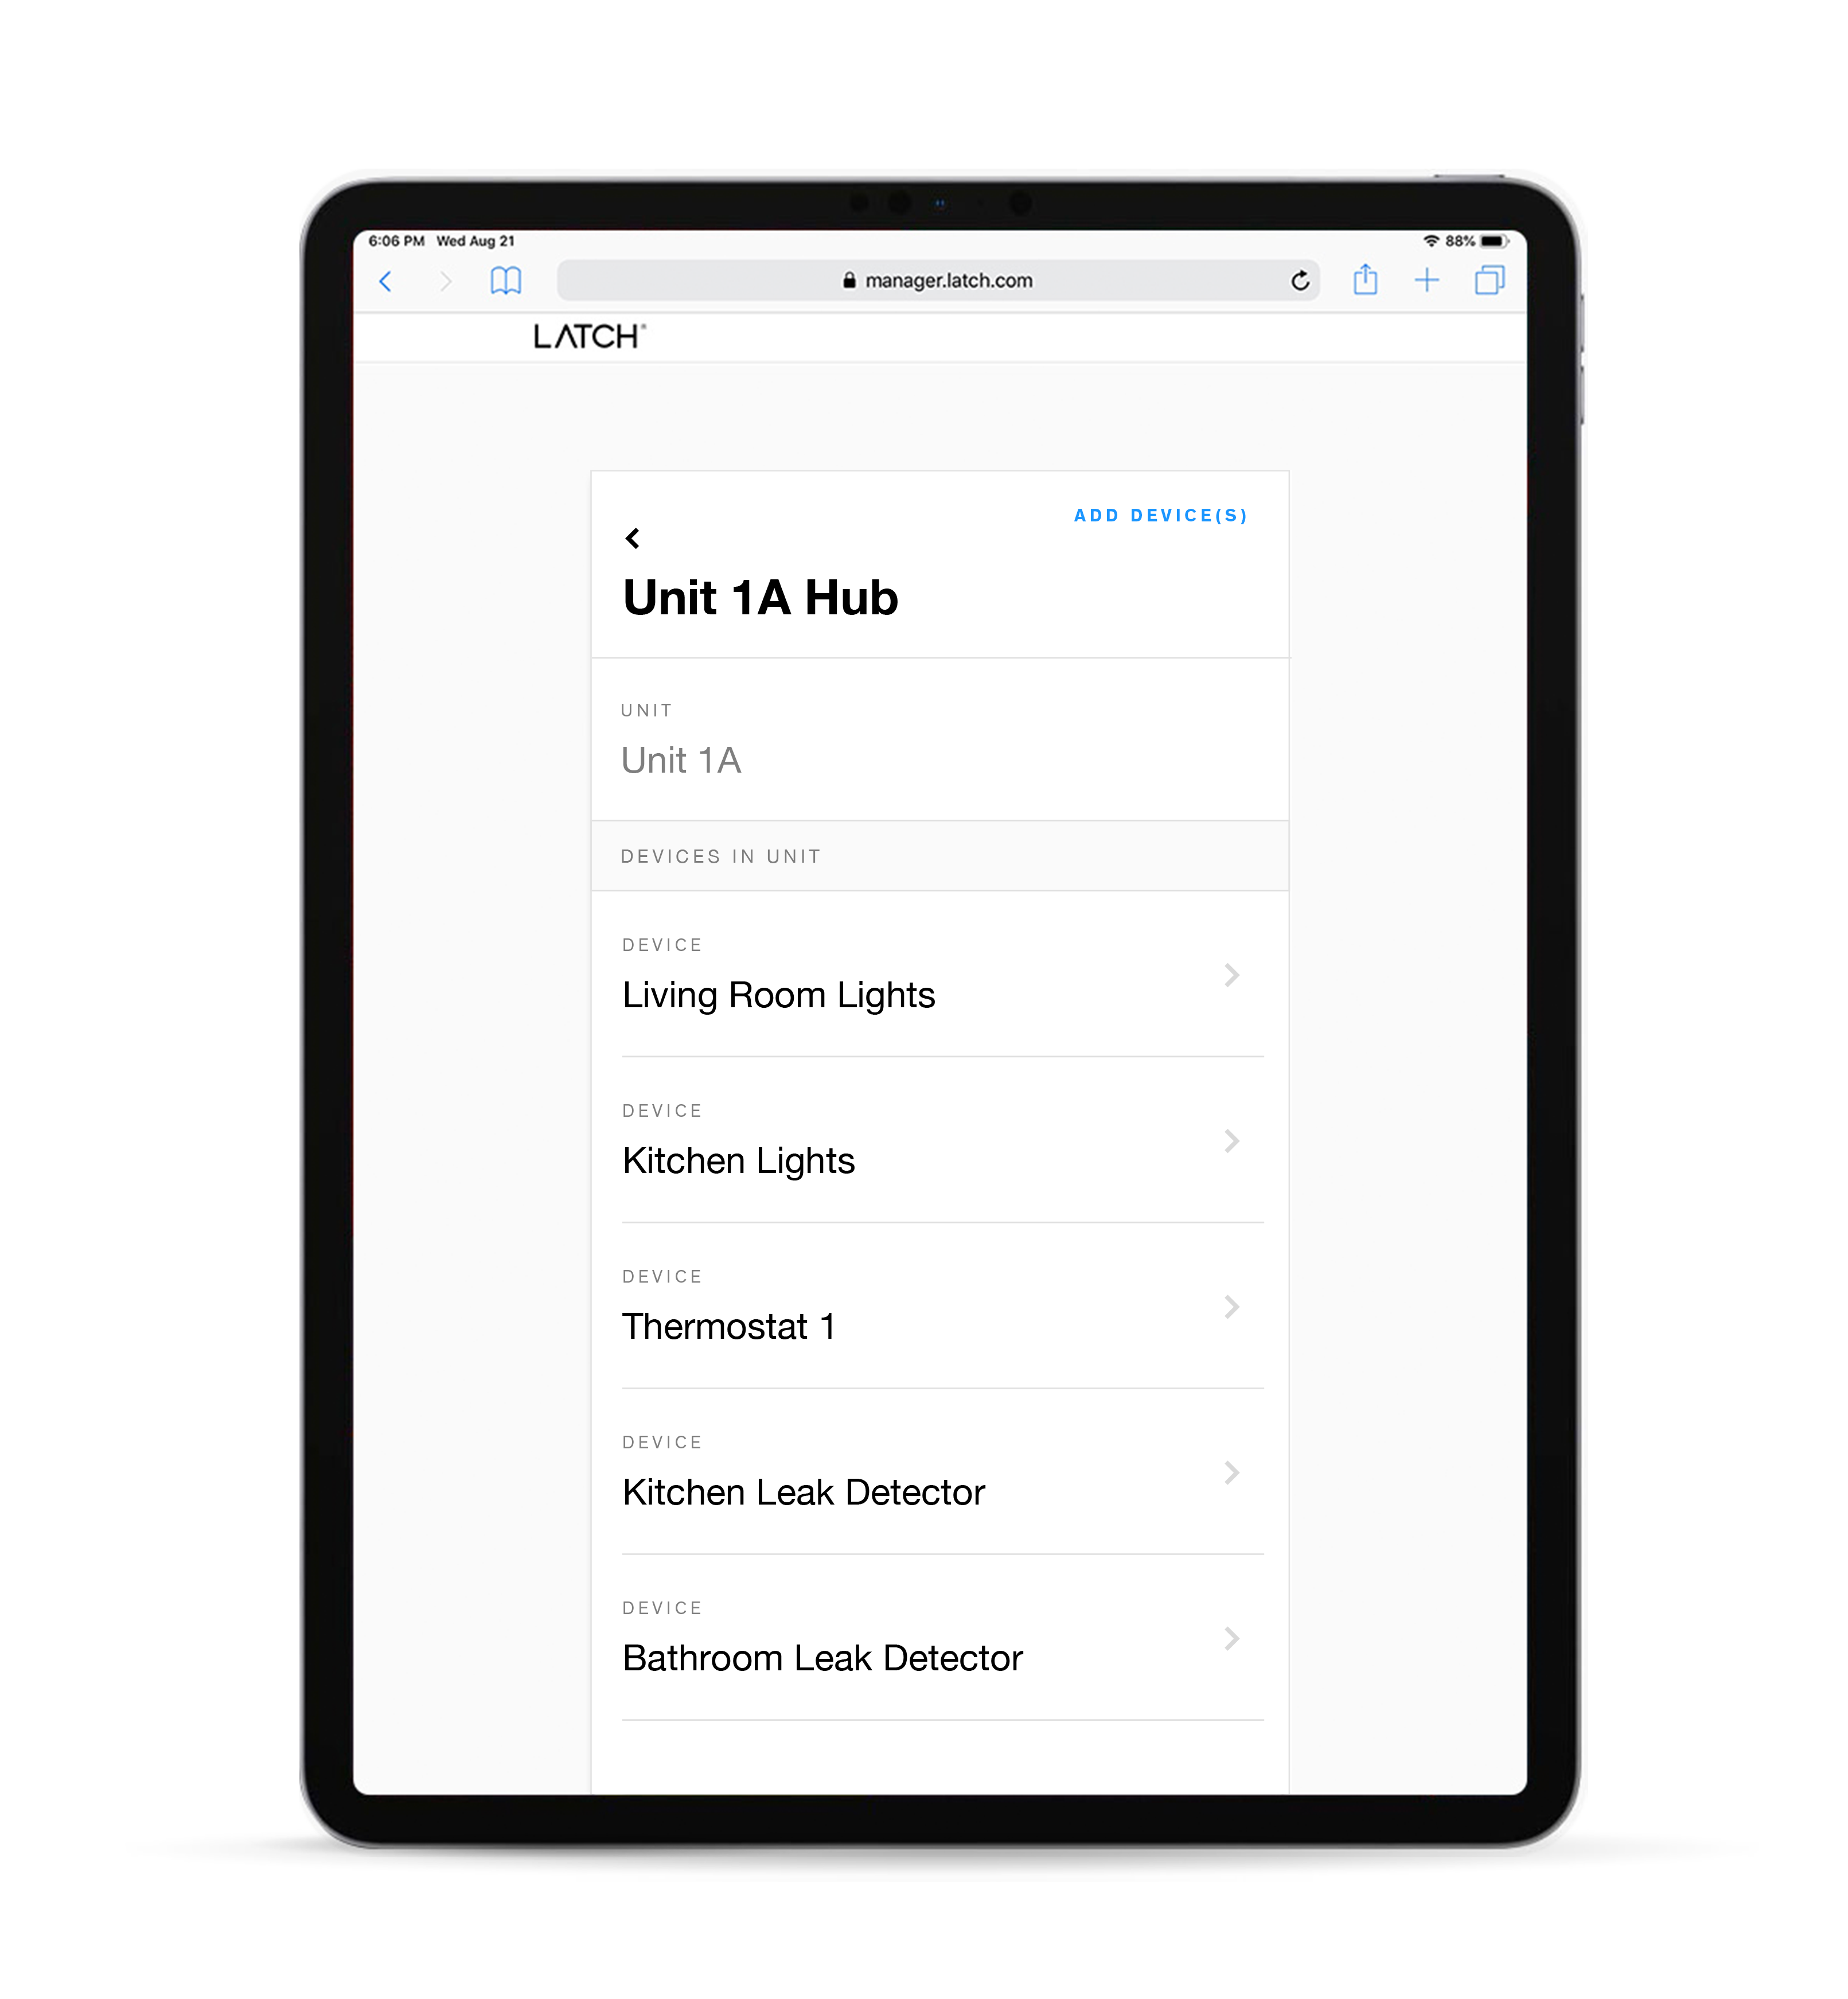 Latch Manager interface on an iPad that shows all devices (including smart home) that is connected to the Latch Hub